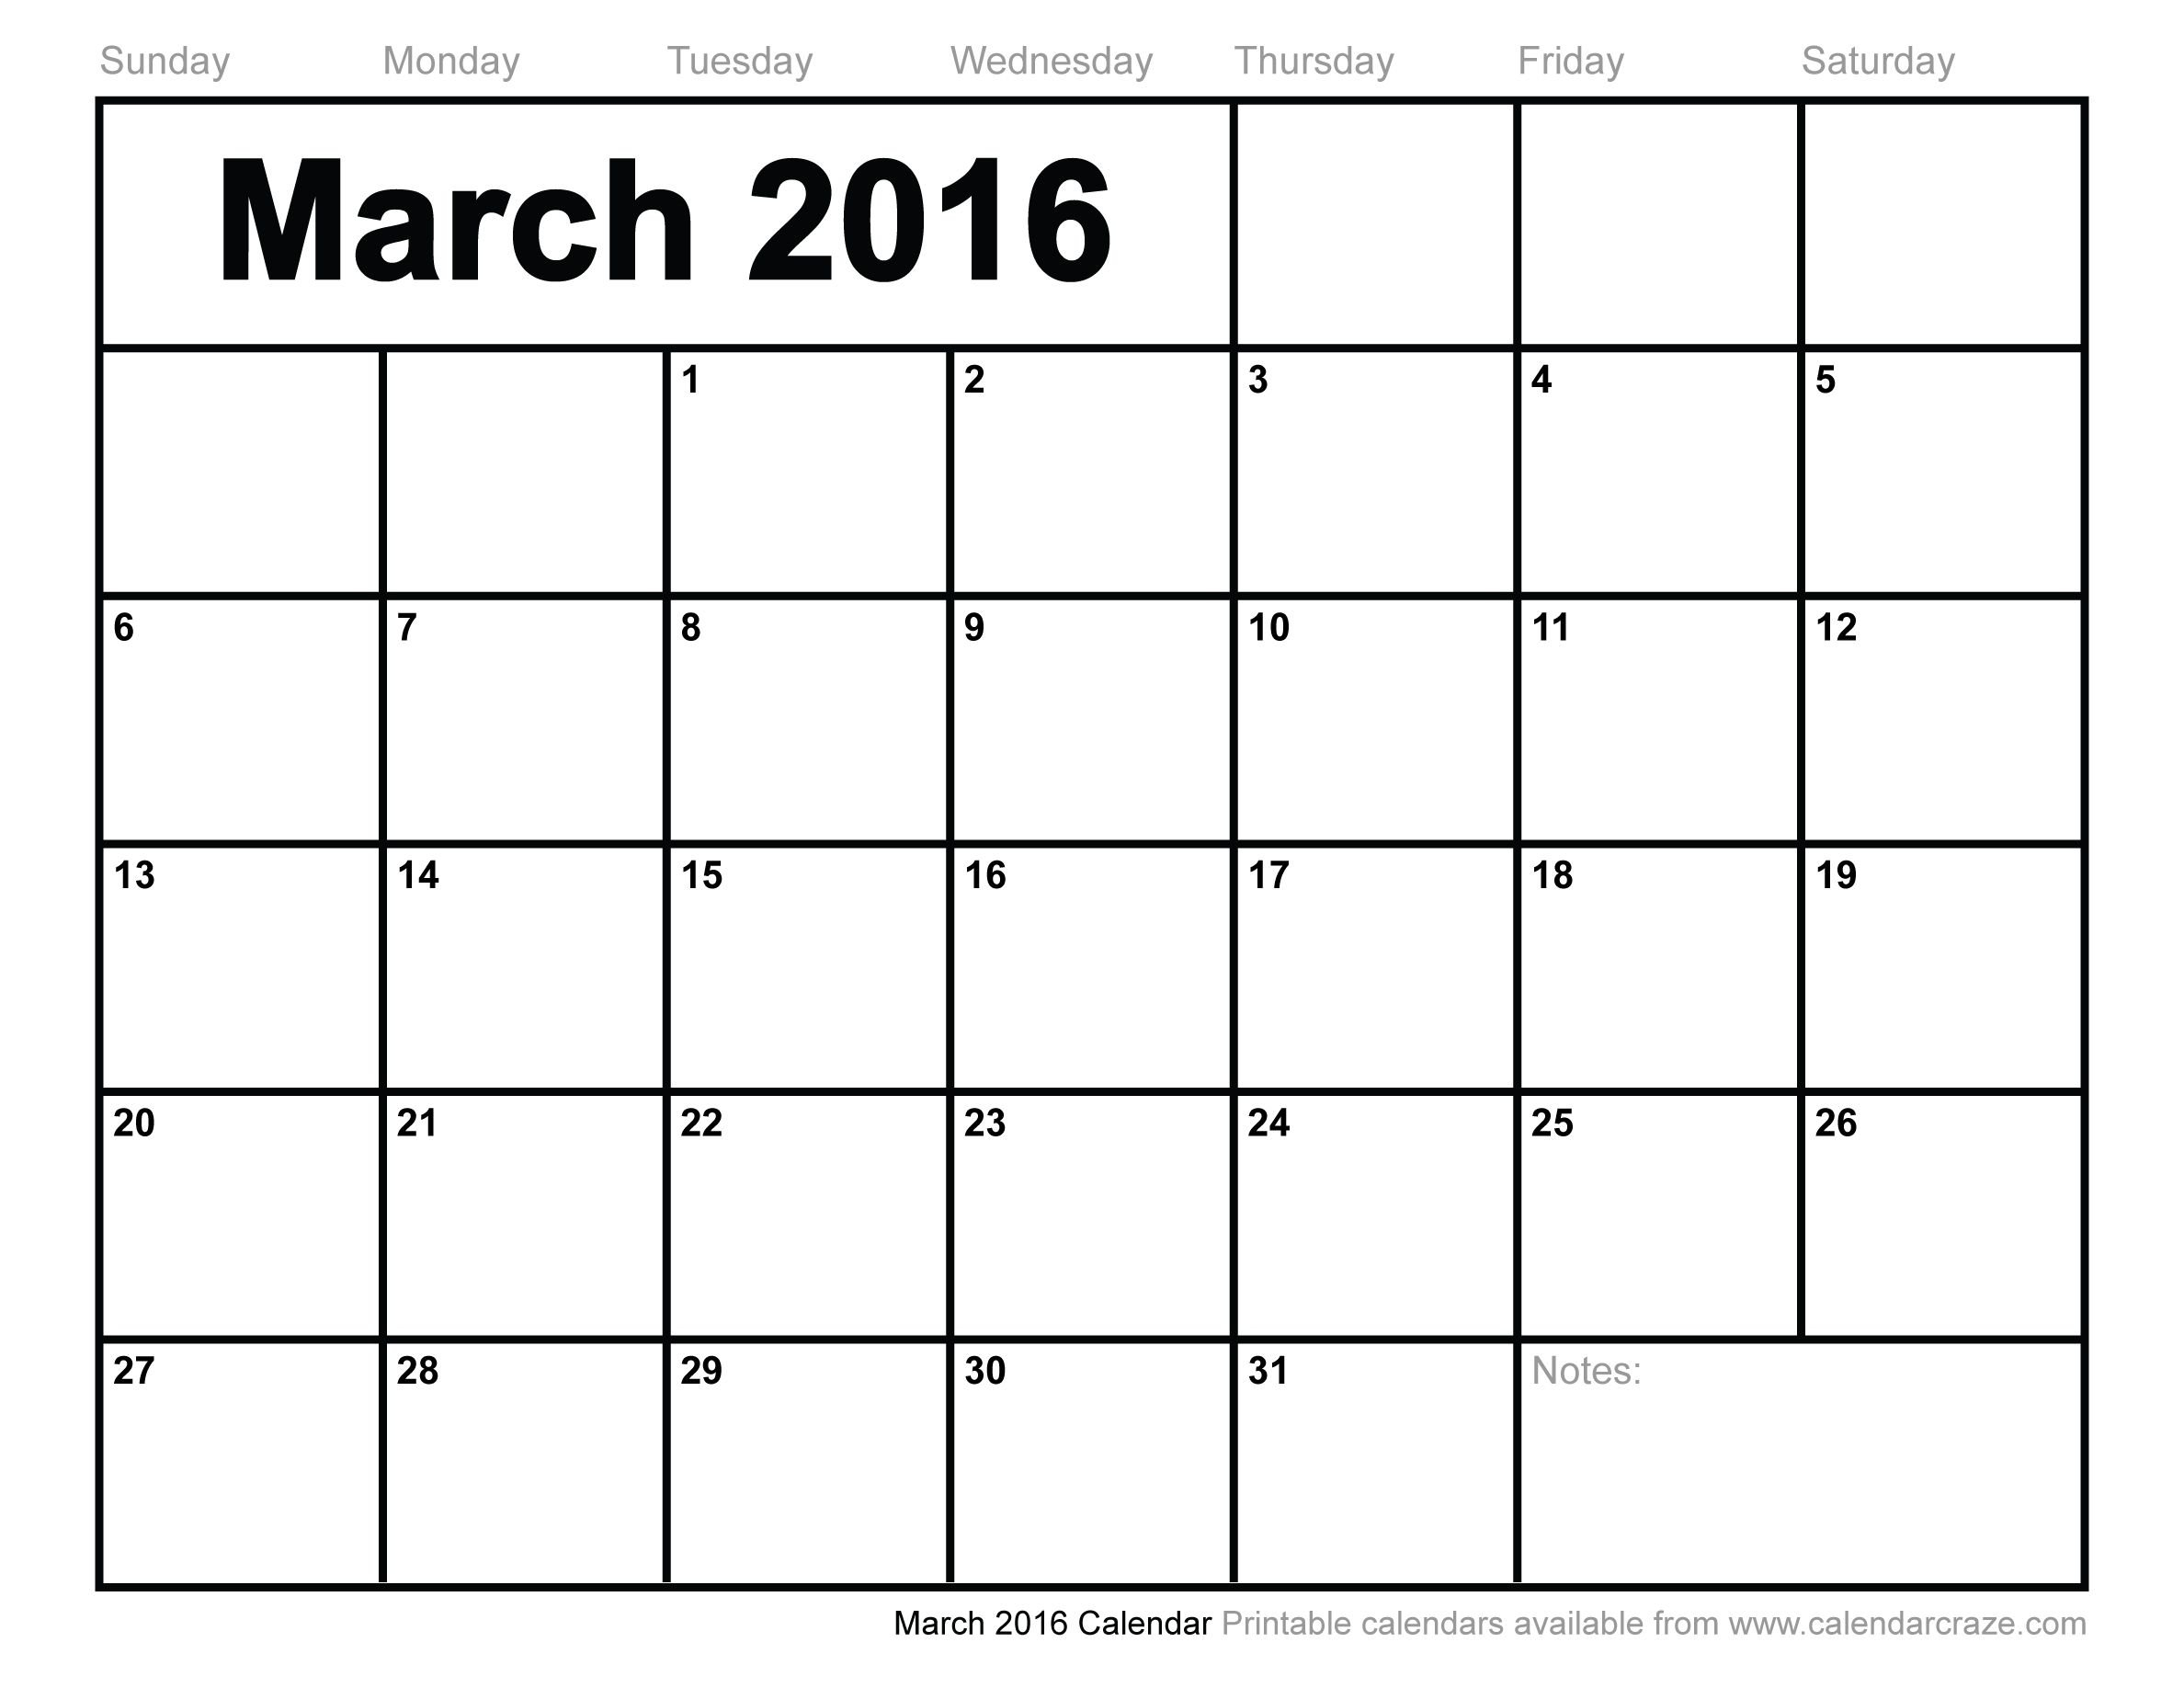 Mar 2016 Calendar Printable Pdf – Google Search Blank Calendars To Fill In Online